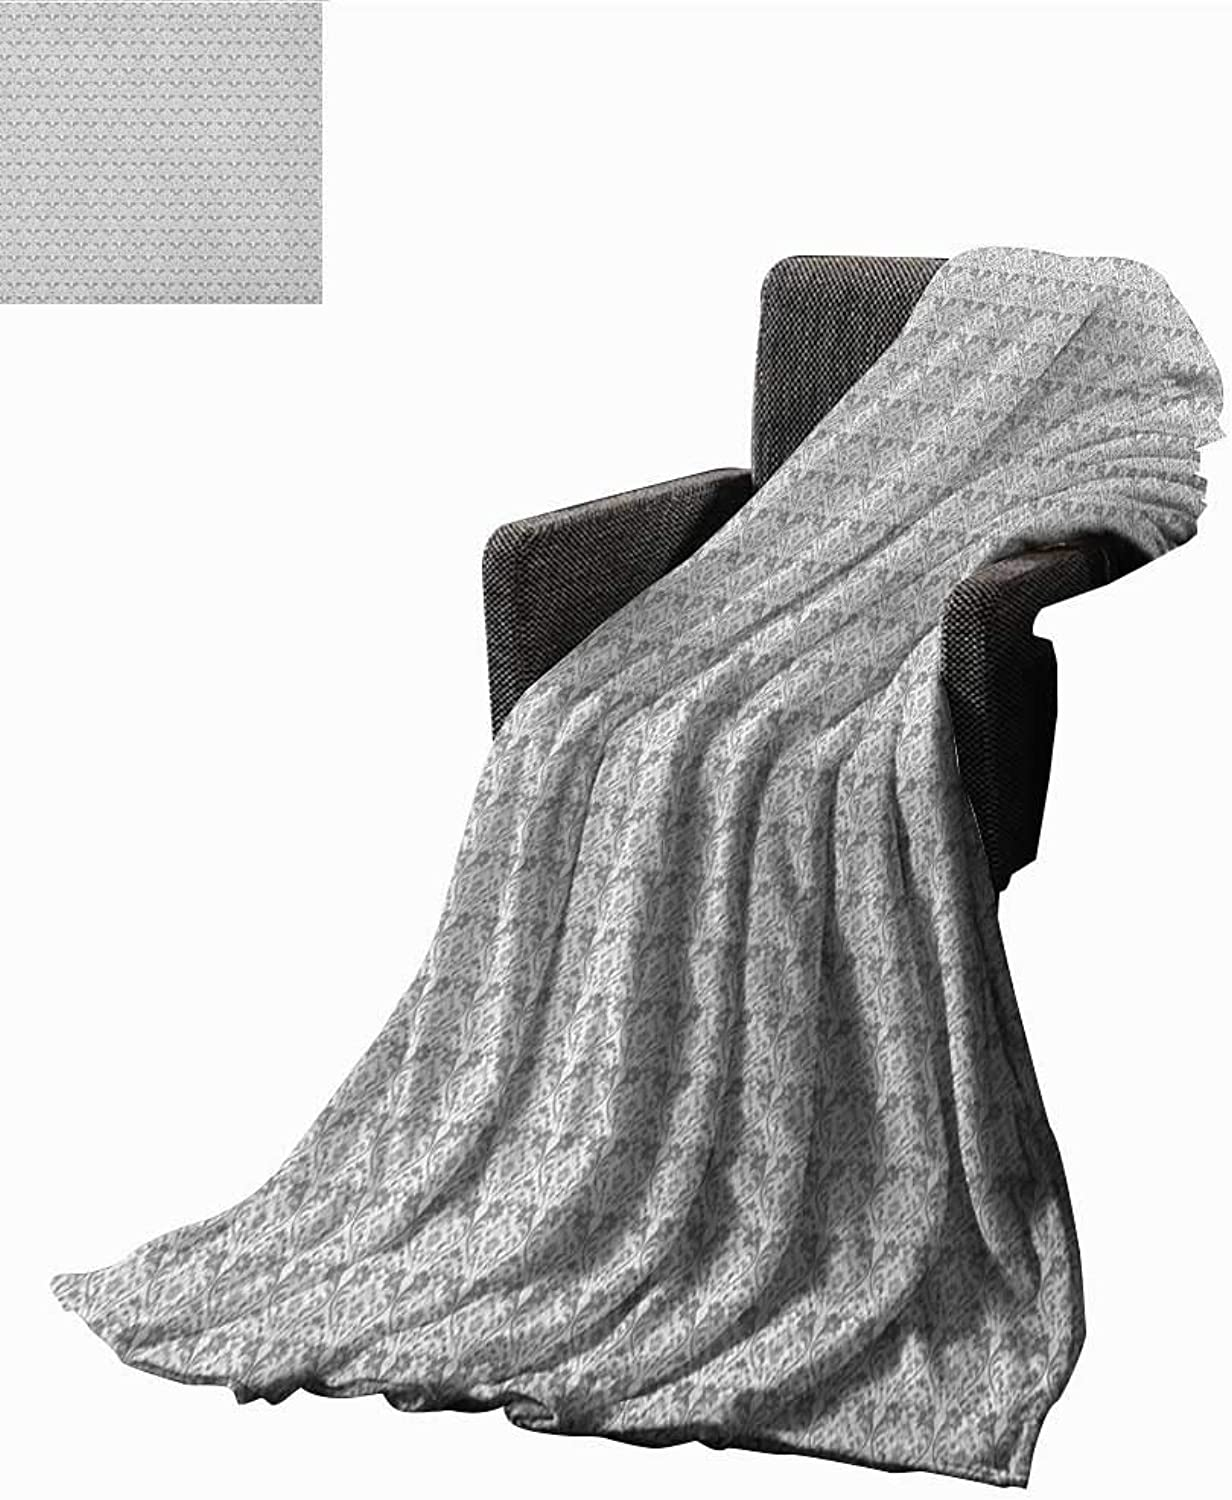 Bed or Couch 60  x 35 Grey and White Microfiber All Season Blanket Vintage Flourishing Flowers with Traditional Design and Curves Print Summer Quilt Comforter Grey Pale Grey White